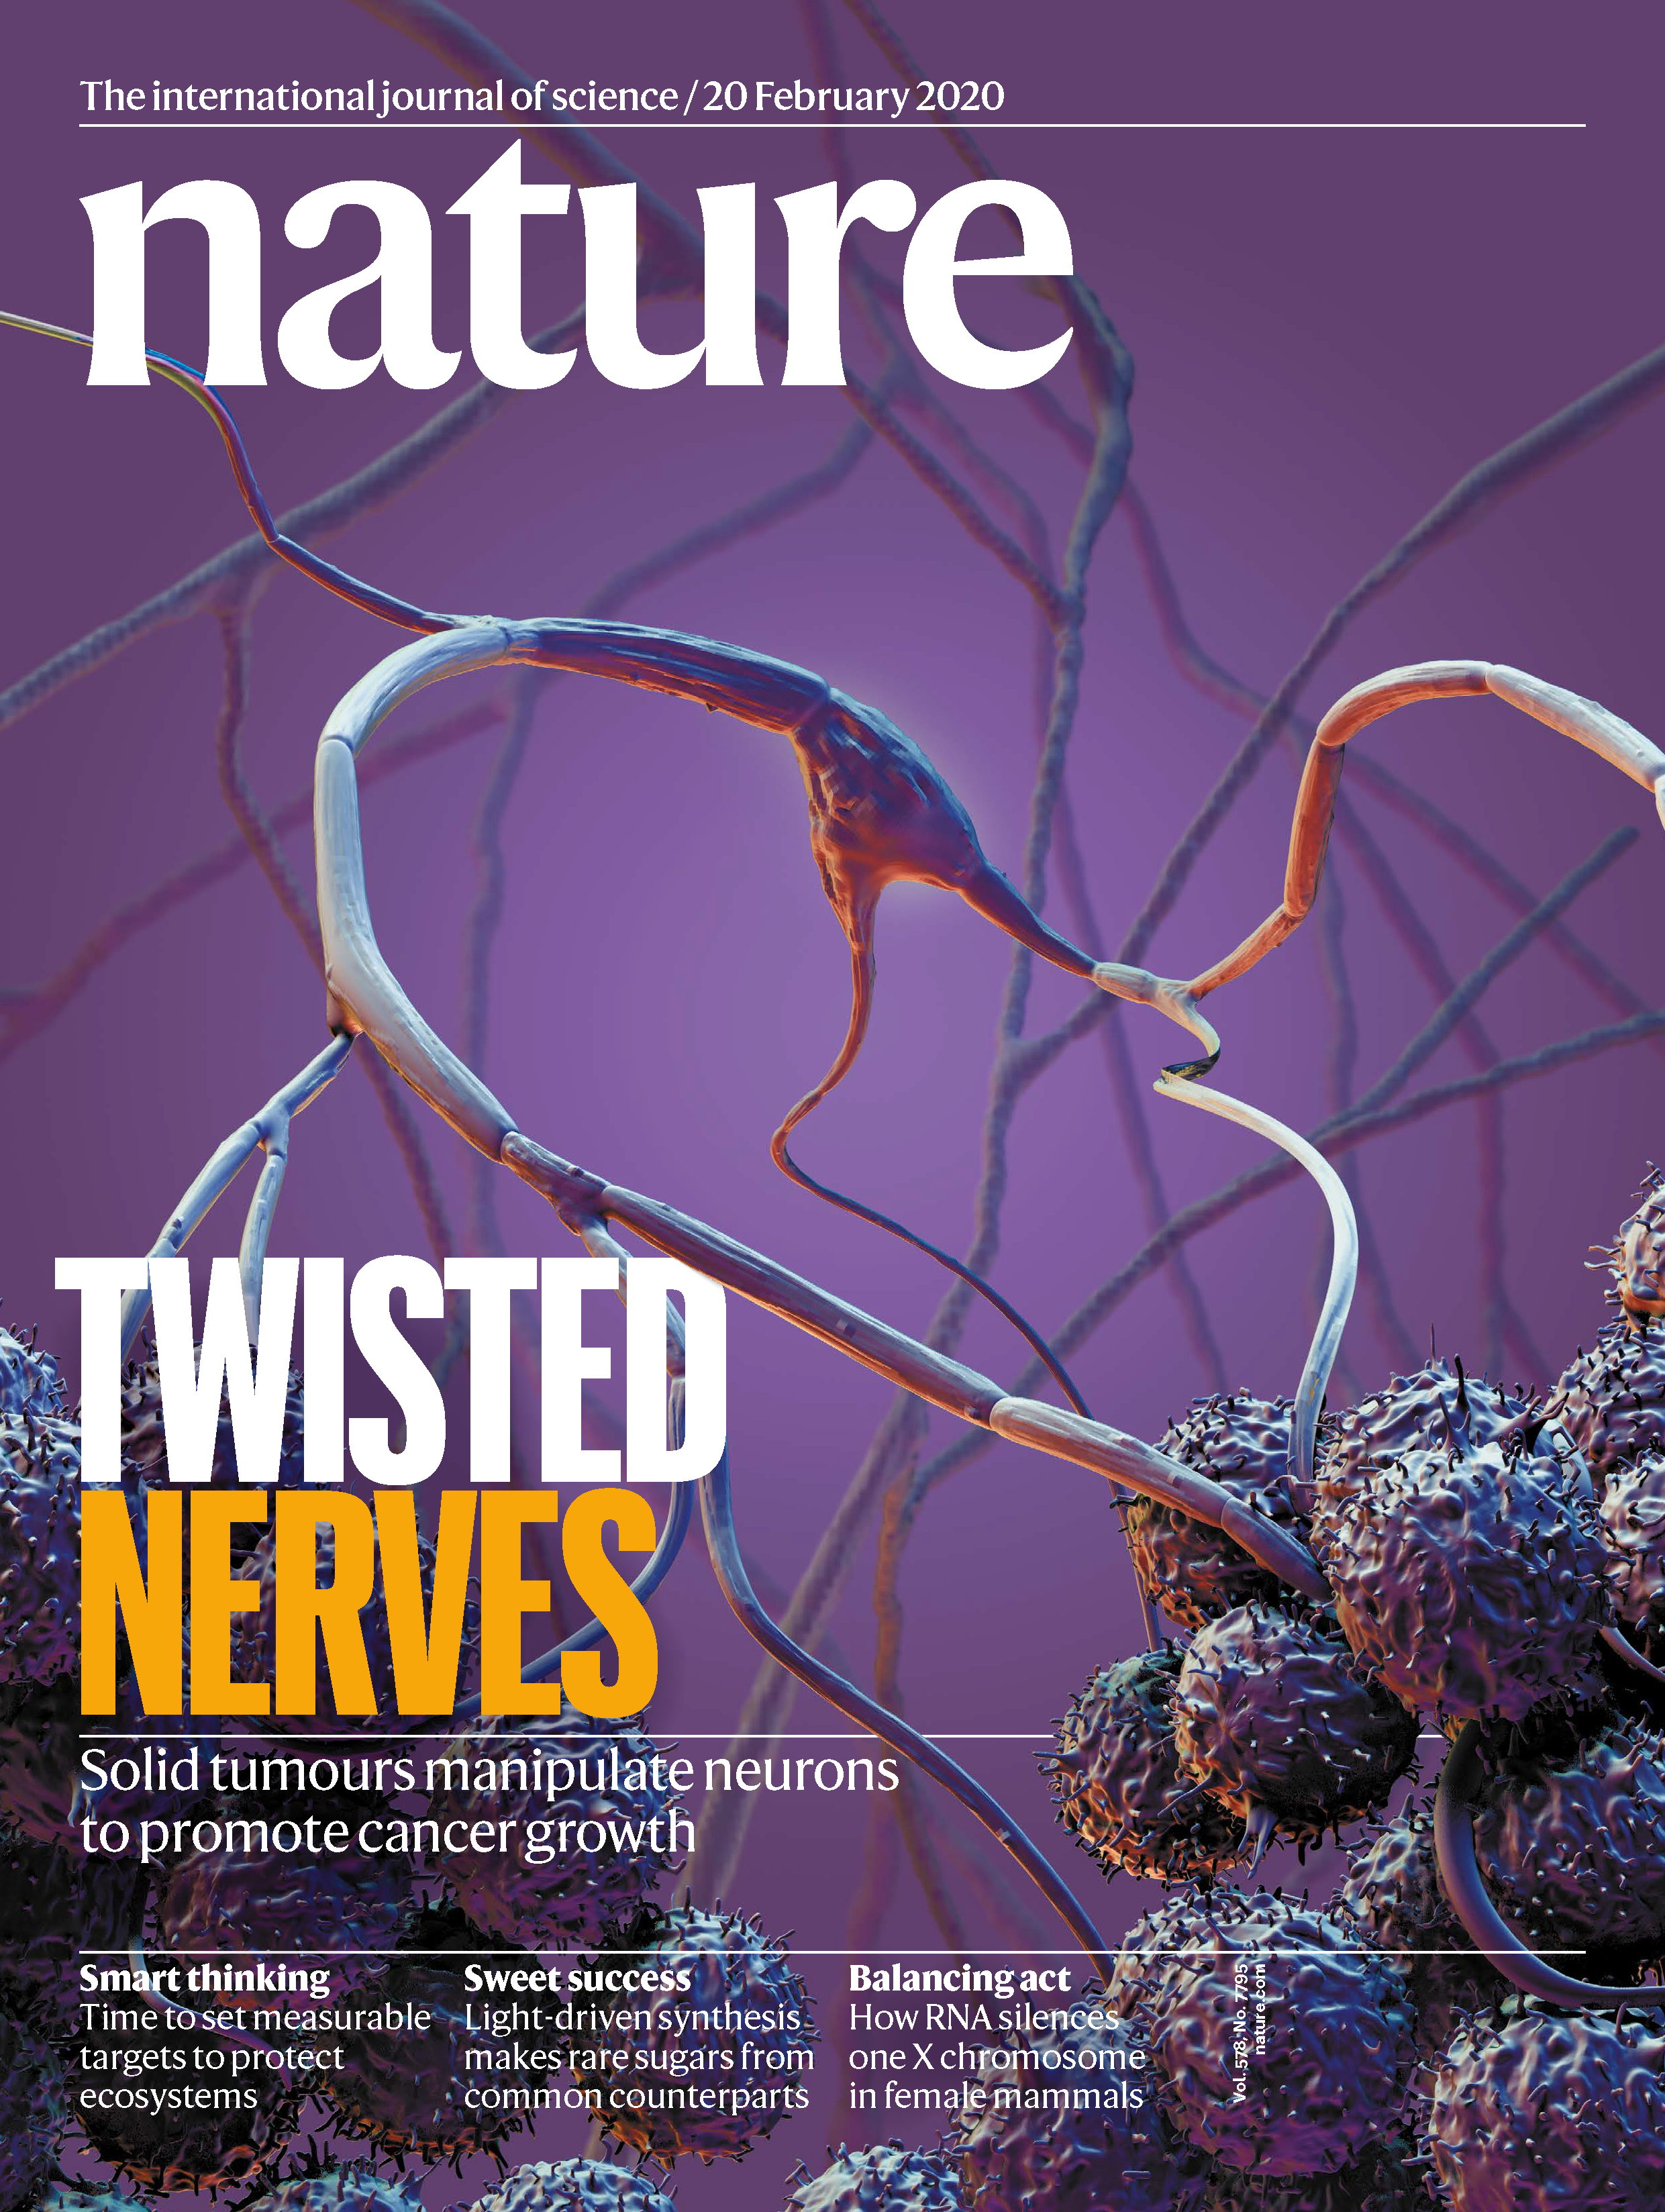 February 2020 cover of Nature Magazine showing nerves and cancerous tumors